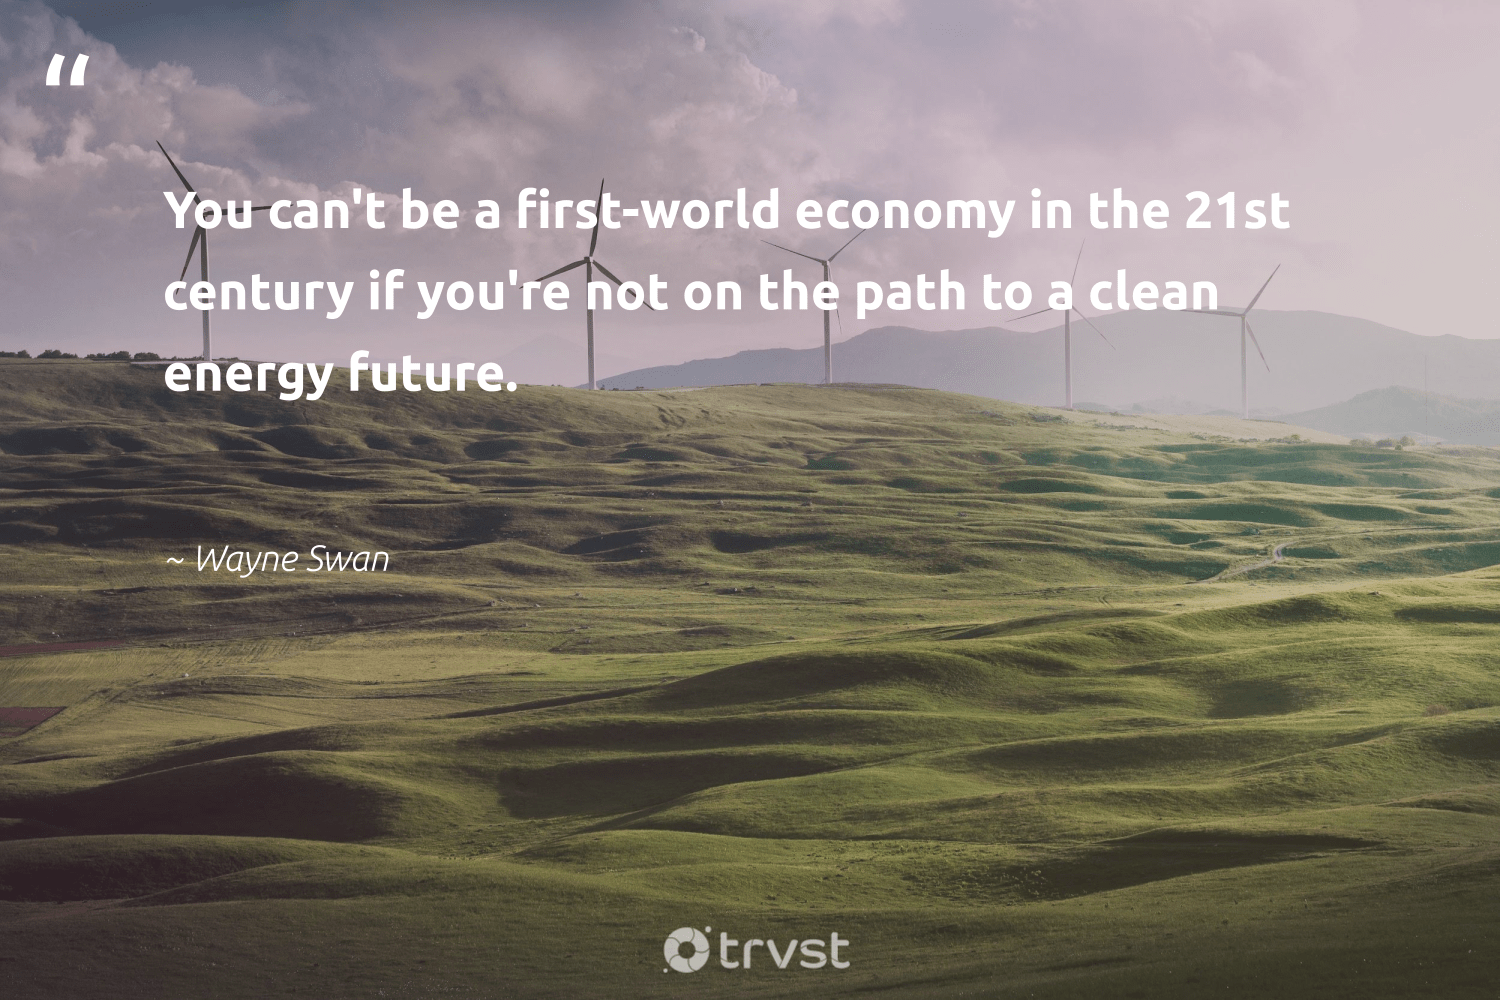 """""""You can't be a first-world economy in the 21st century if you're not on the path to a clean energy future.""""  - Wayne Swan #trvst #quotes #renewableenergy #energy #cleanenergy #switchfuelenergy #climatechange #zerocarbon #bethechange #lowcarbon #sustainability #planetearth"""